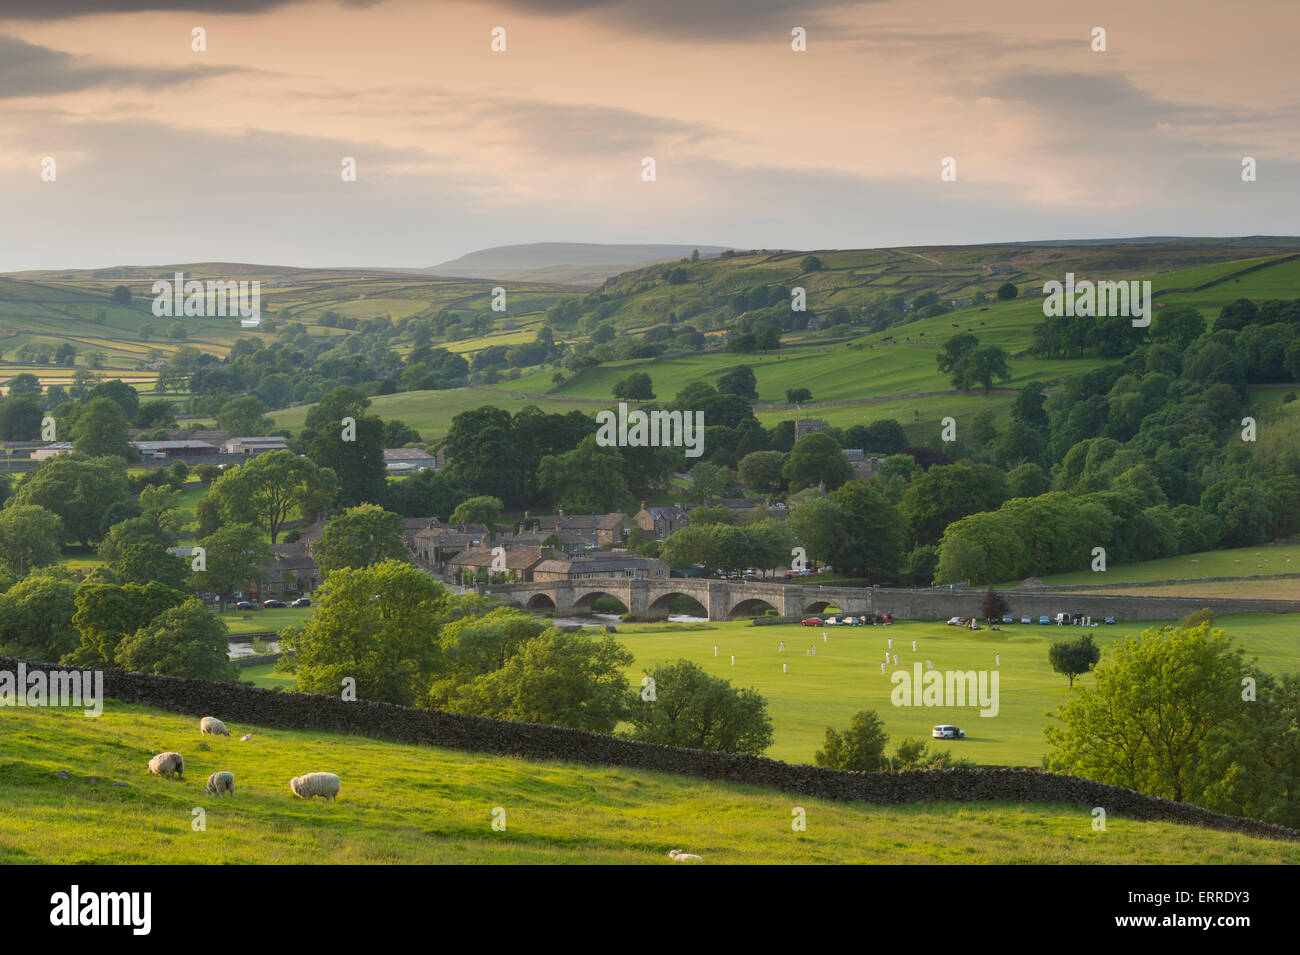 Rural Idyll Sunny Summer Evening View Of Beautiful Scenic Hilly Stock Photo Royalty Free